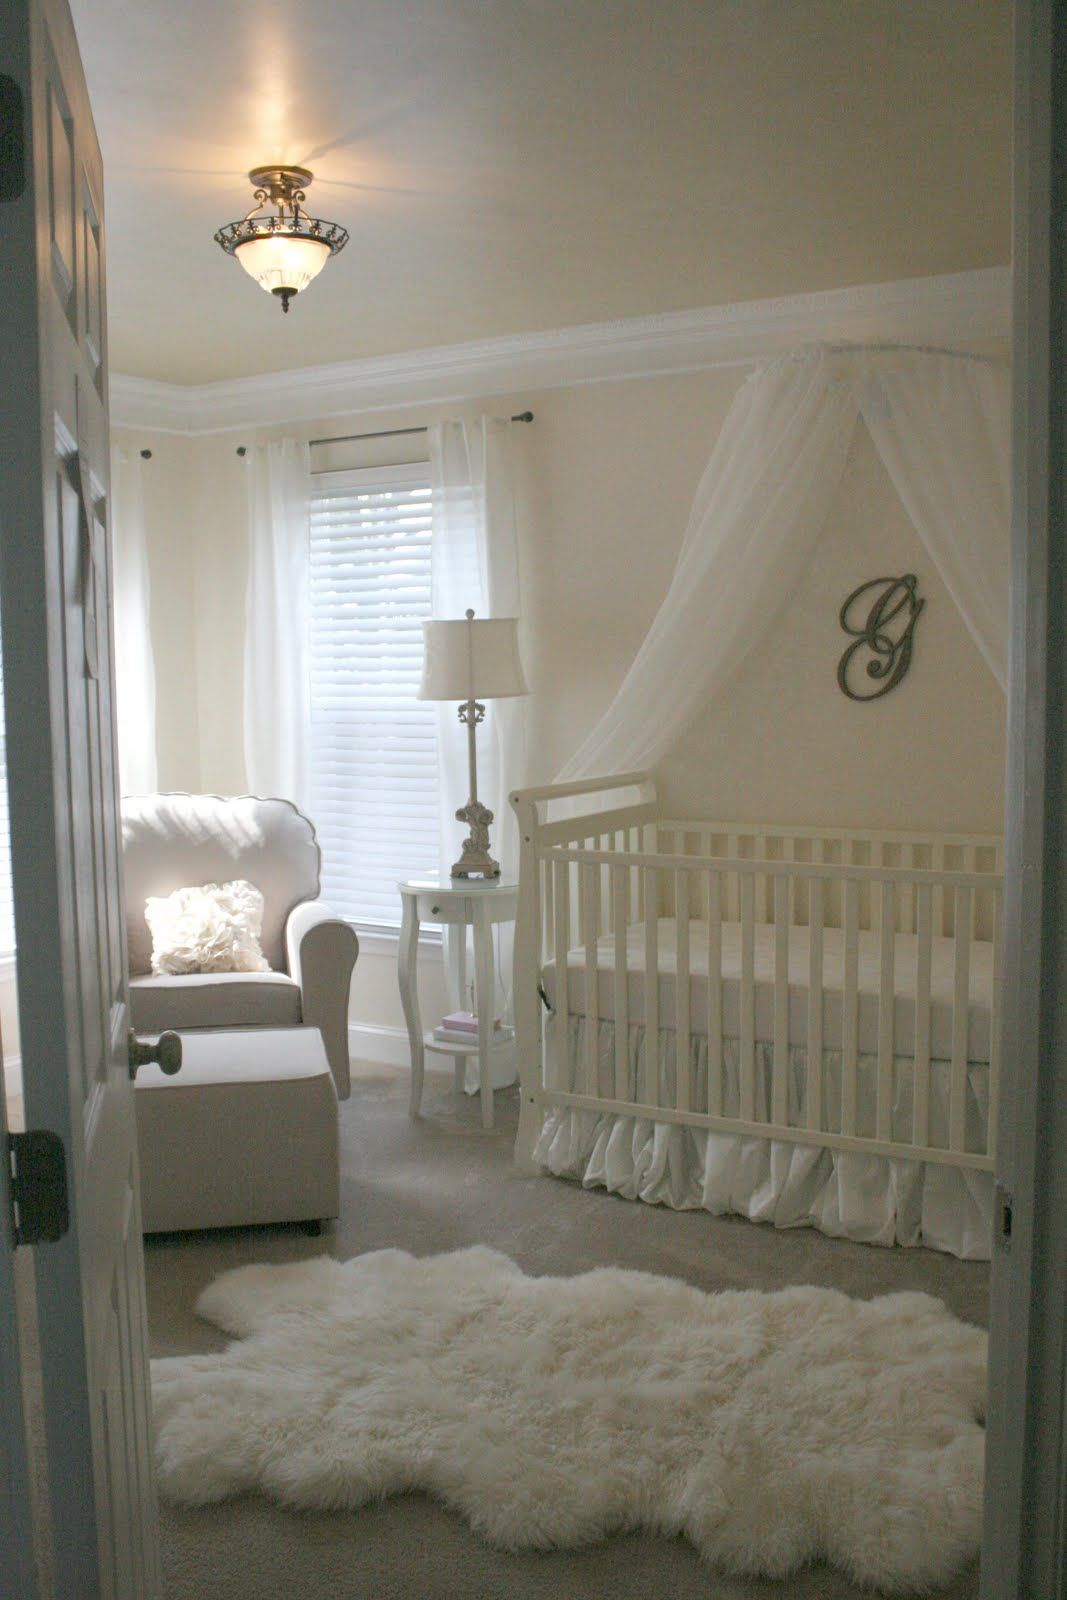 All White Vintage Baby Girls Nursery.the Idea Of All White For Baby Is  Nice, But When You Take Into Account All The Spit Ups, Projectile Poo, And  Other Baby ...